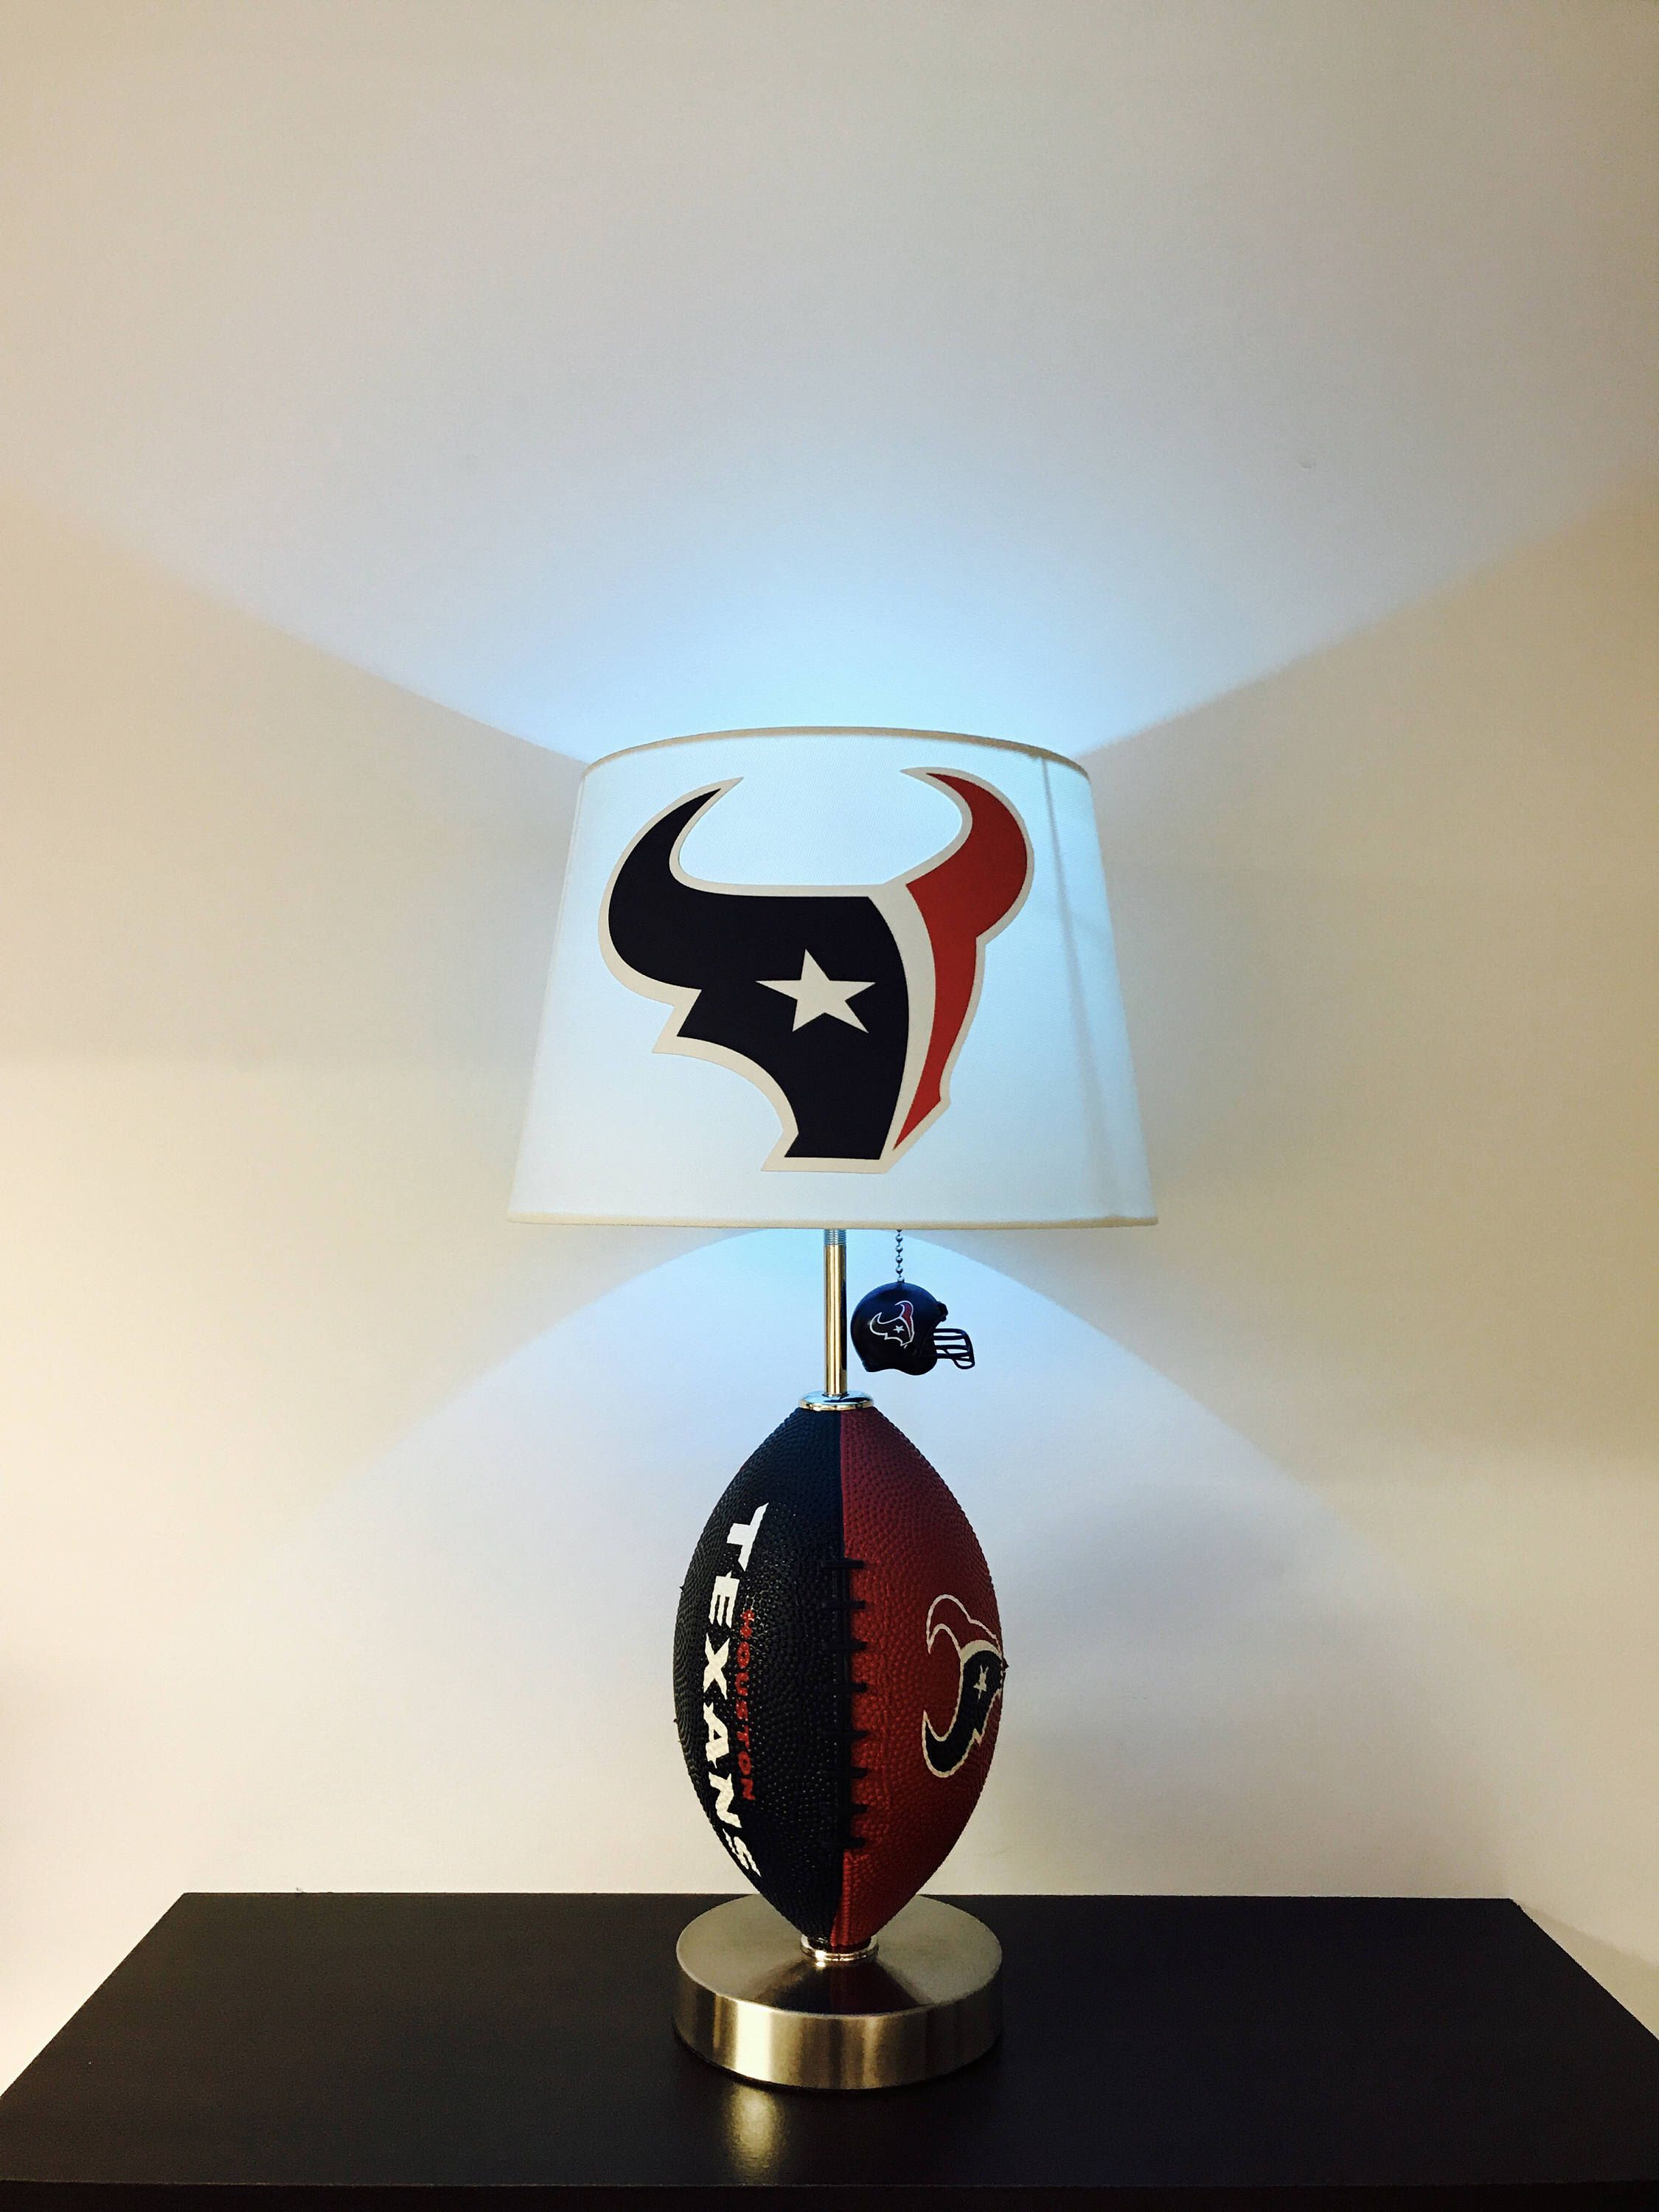 Nfl houston texans football lamp man cave sports lamp kids night nfl houston texans football lamp man cave sports lamp kids night light table lamp texans by caliradoart on etsy httpsetsylisting mozeypictures Image collections